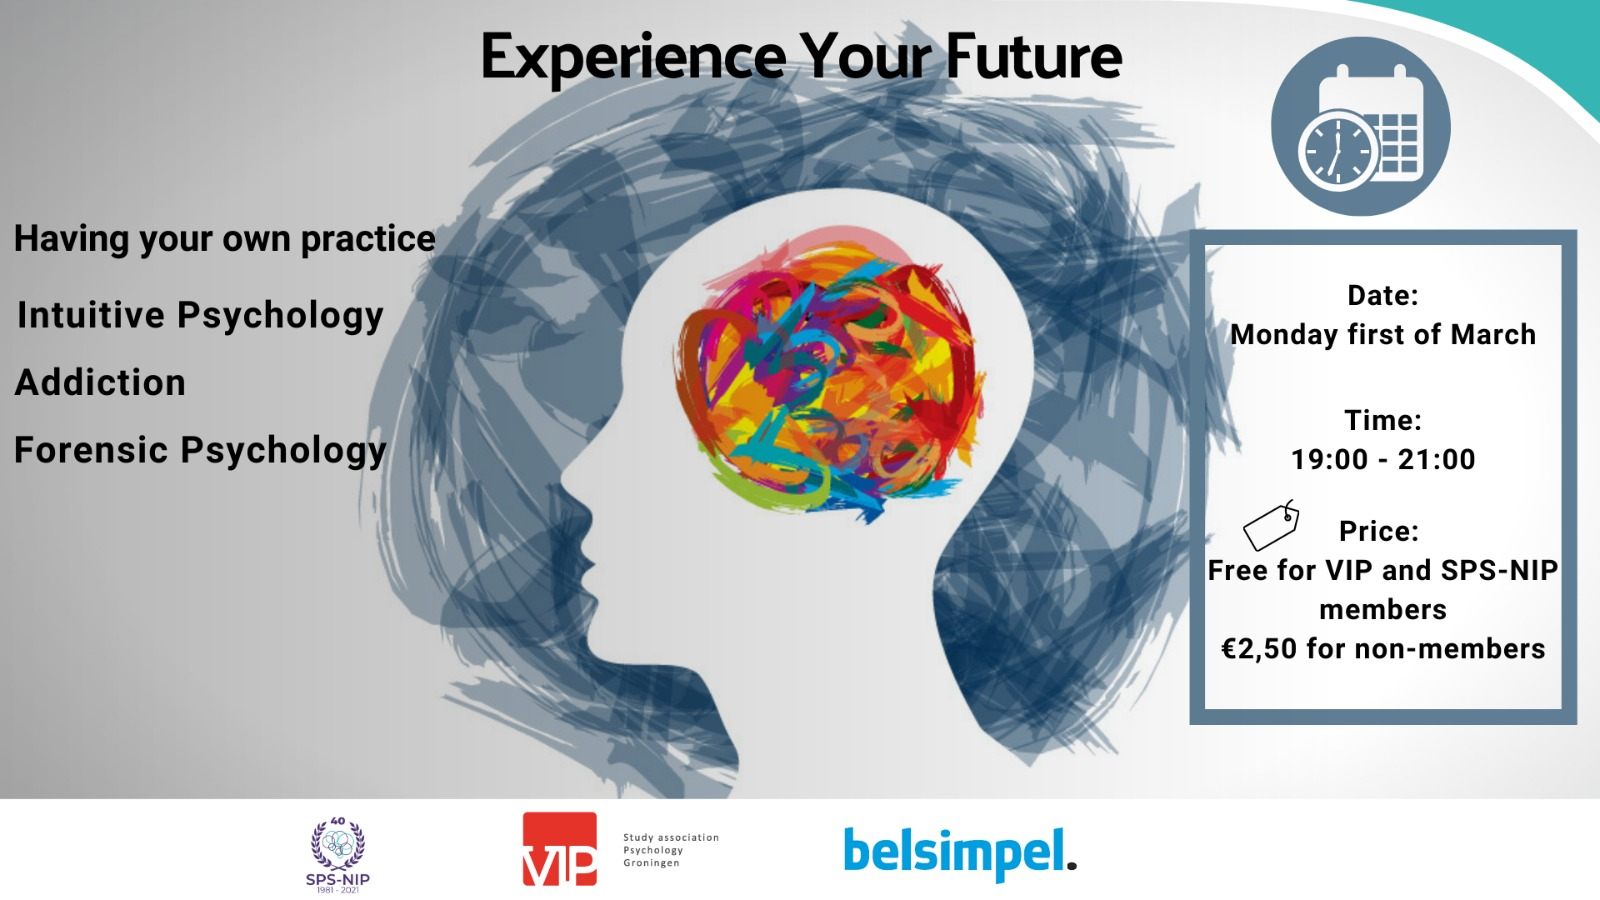 VIP: Experience your future Clinical Psychology